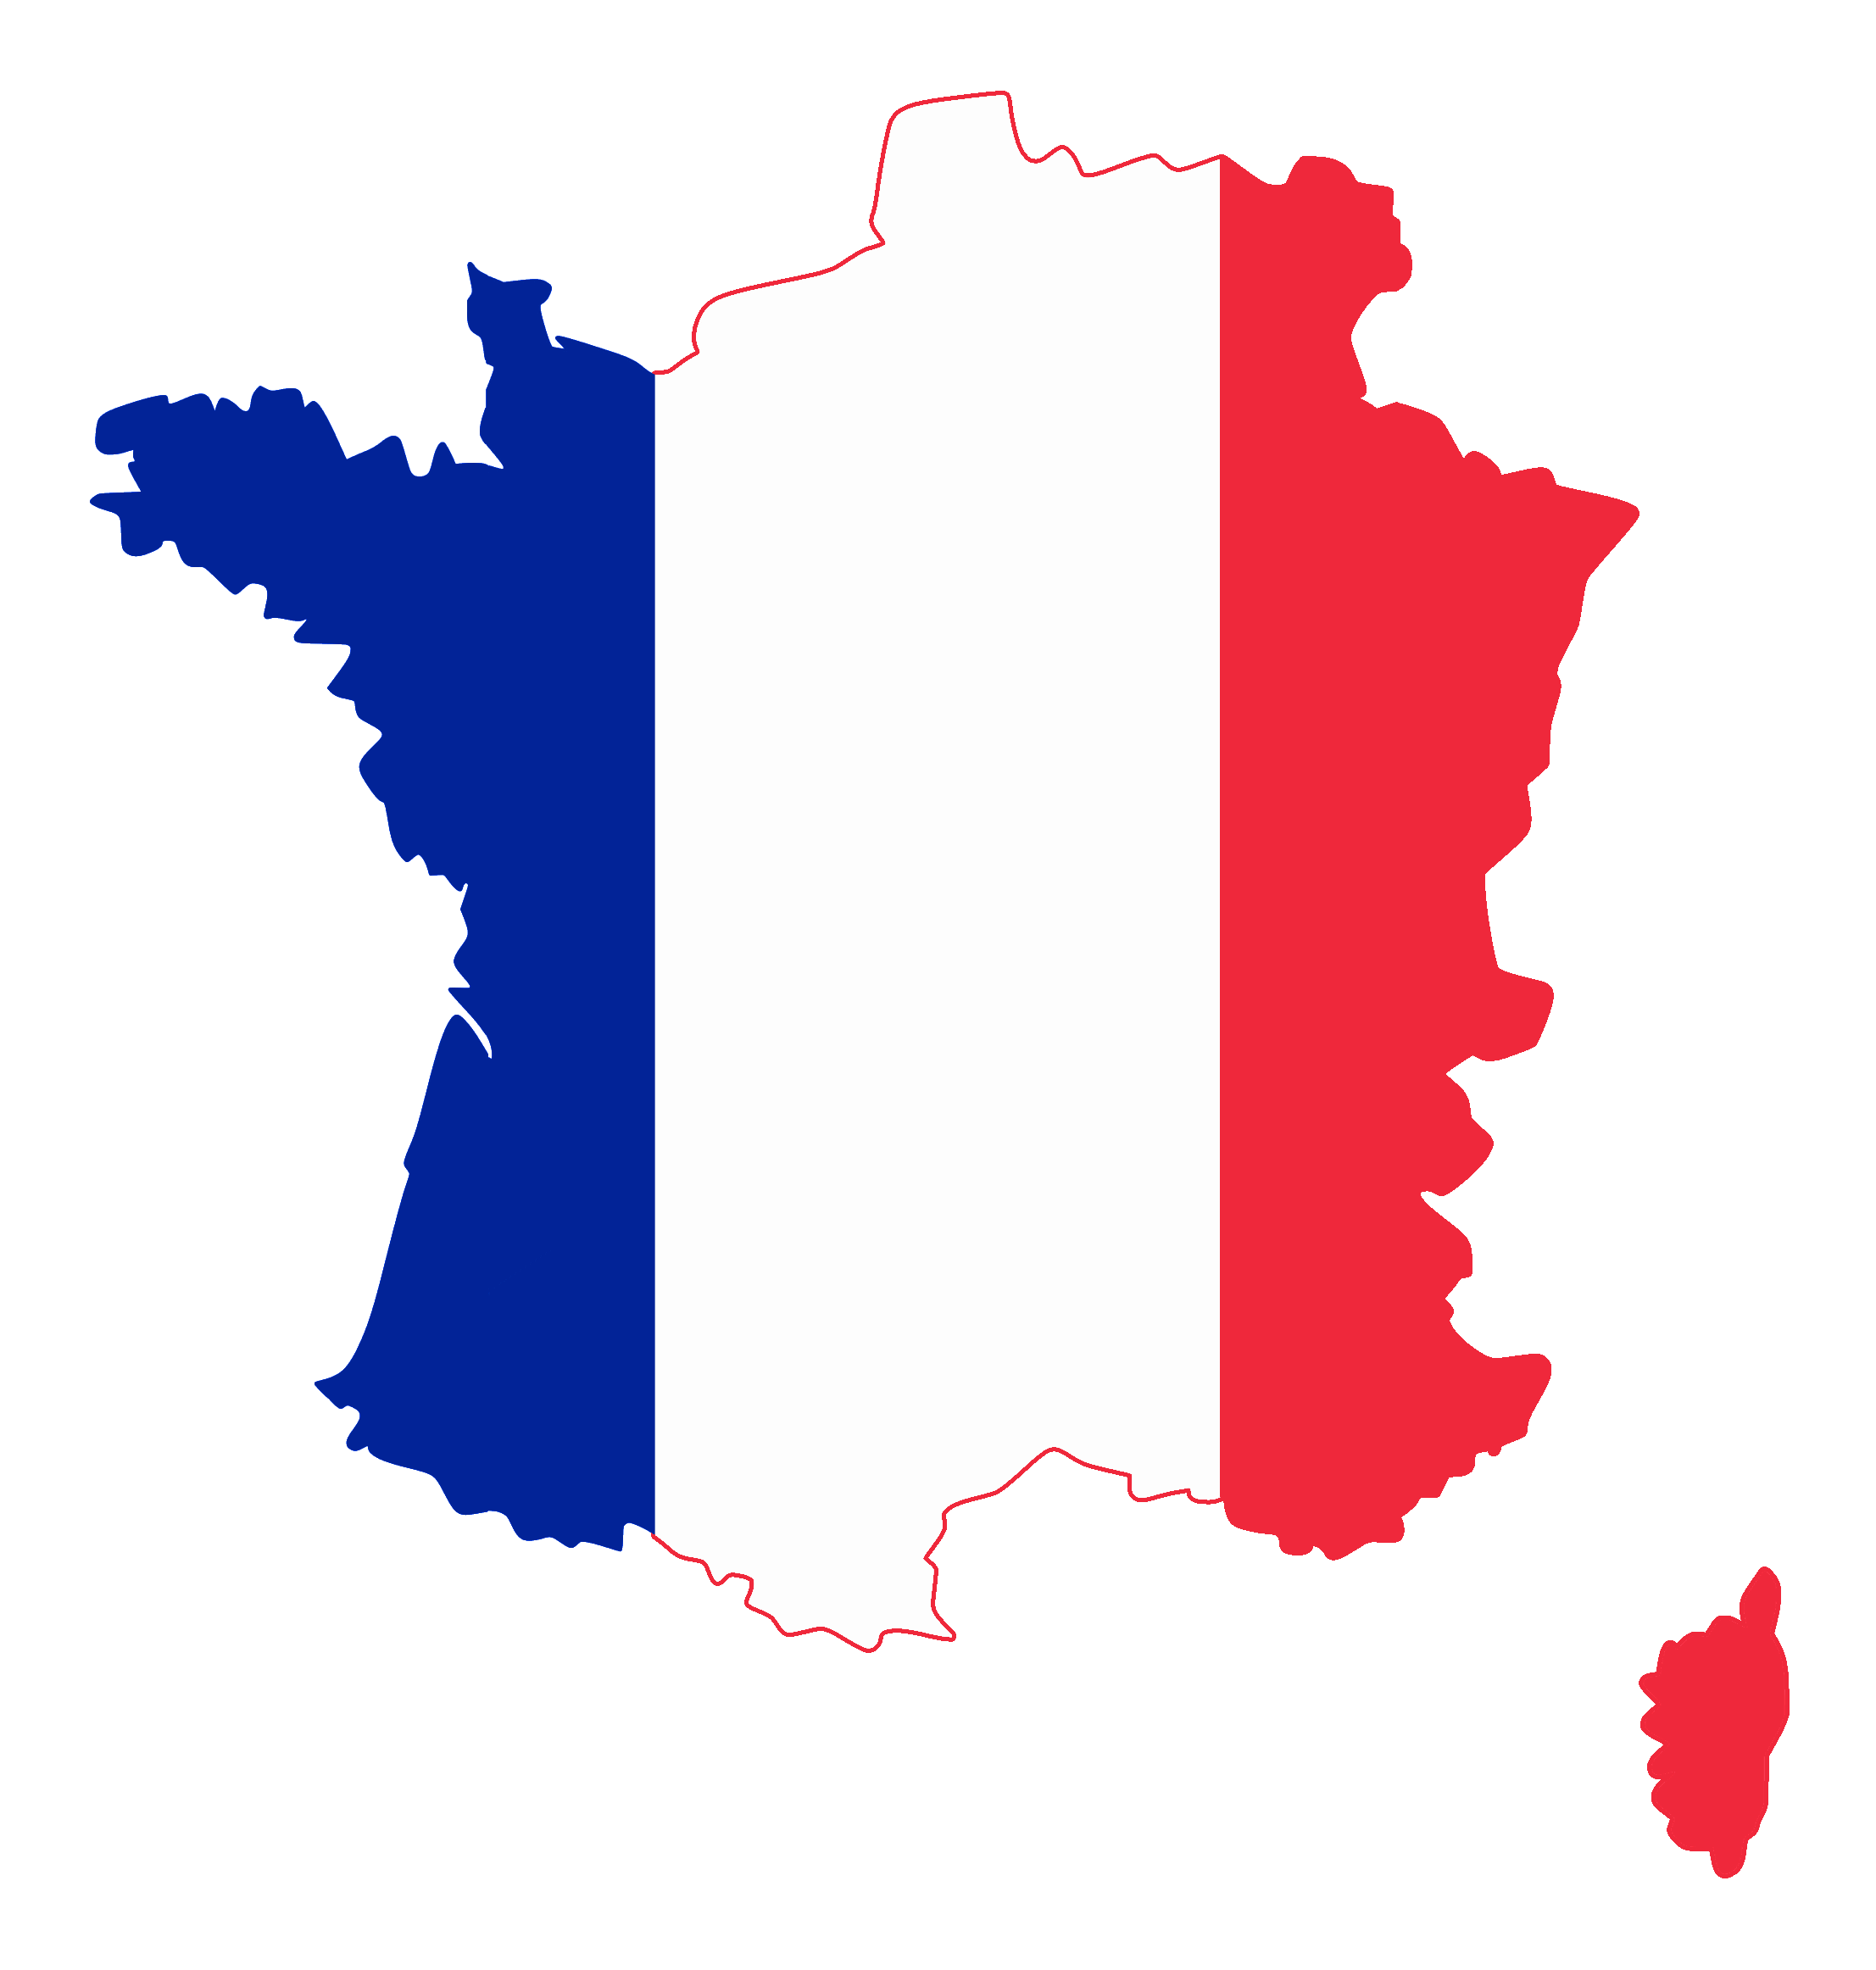 French clipart icon. Download png flag free